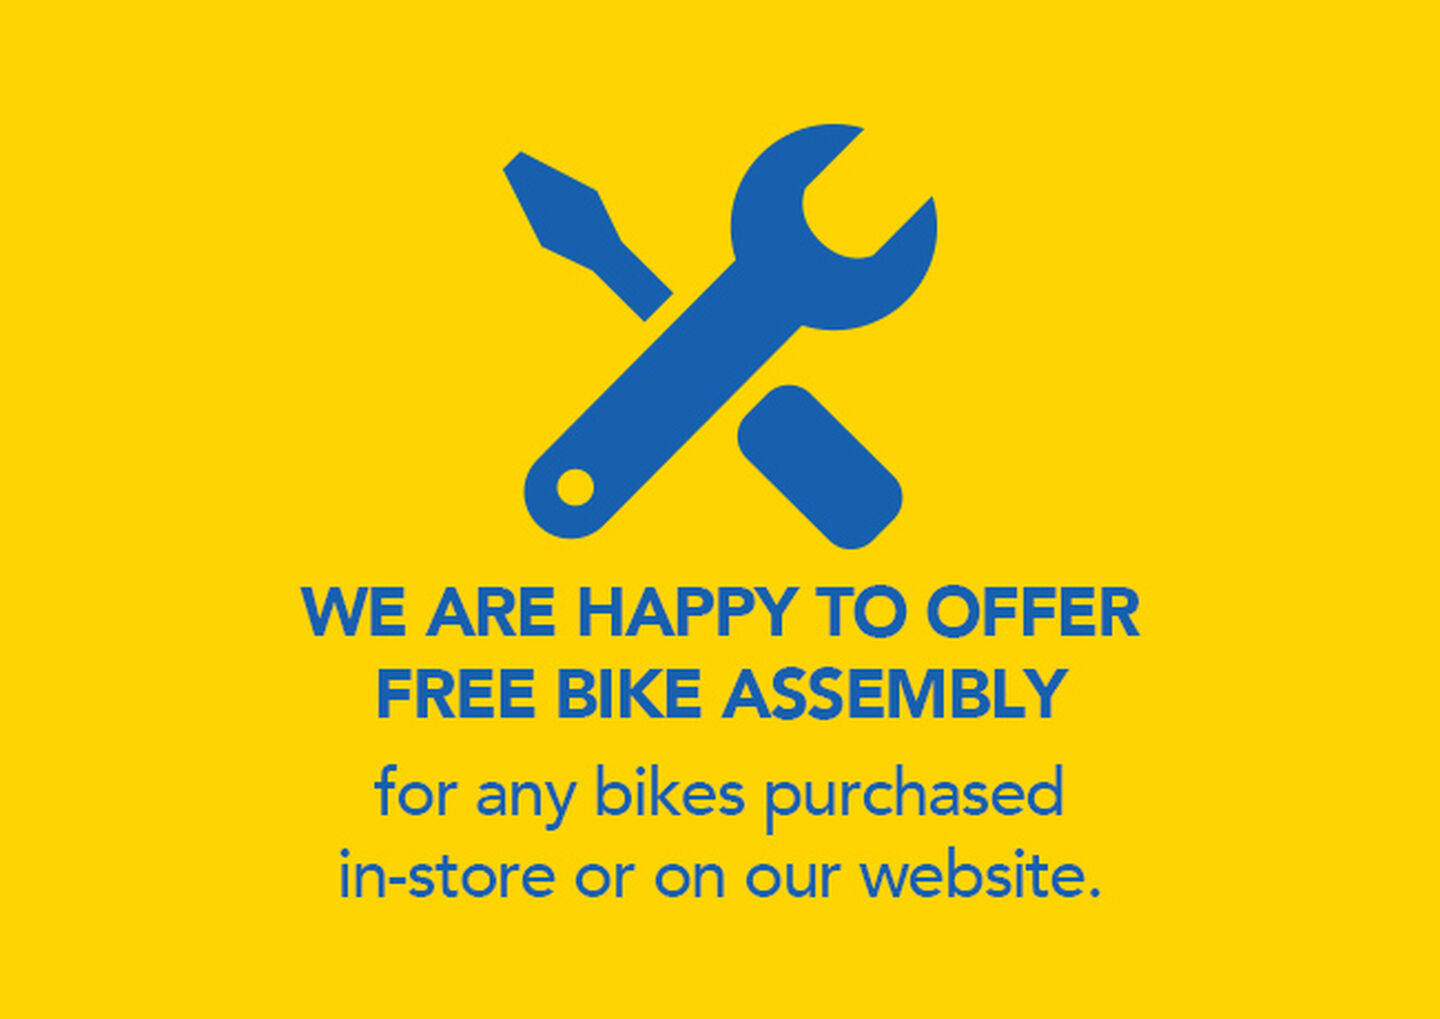 WE ARE HAPPY TO OFFER FREE BIKE ASSEMBLY for any bikes purchased in-store or on our website.